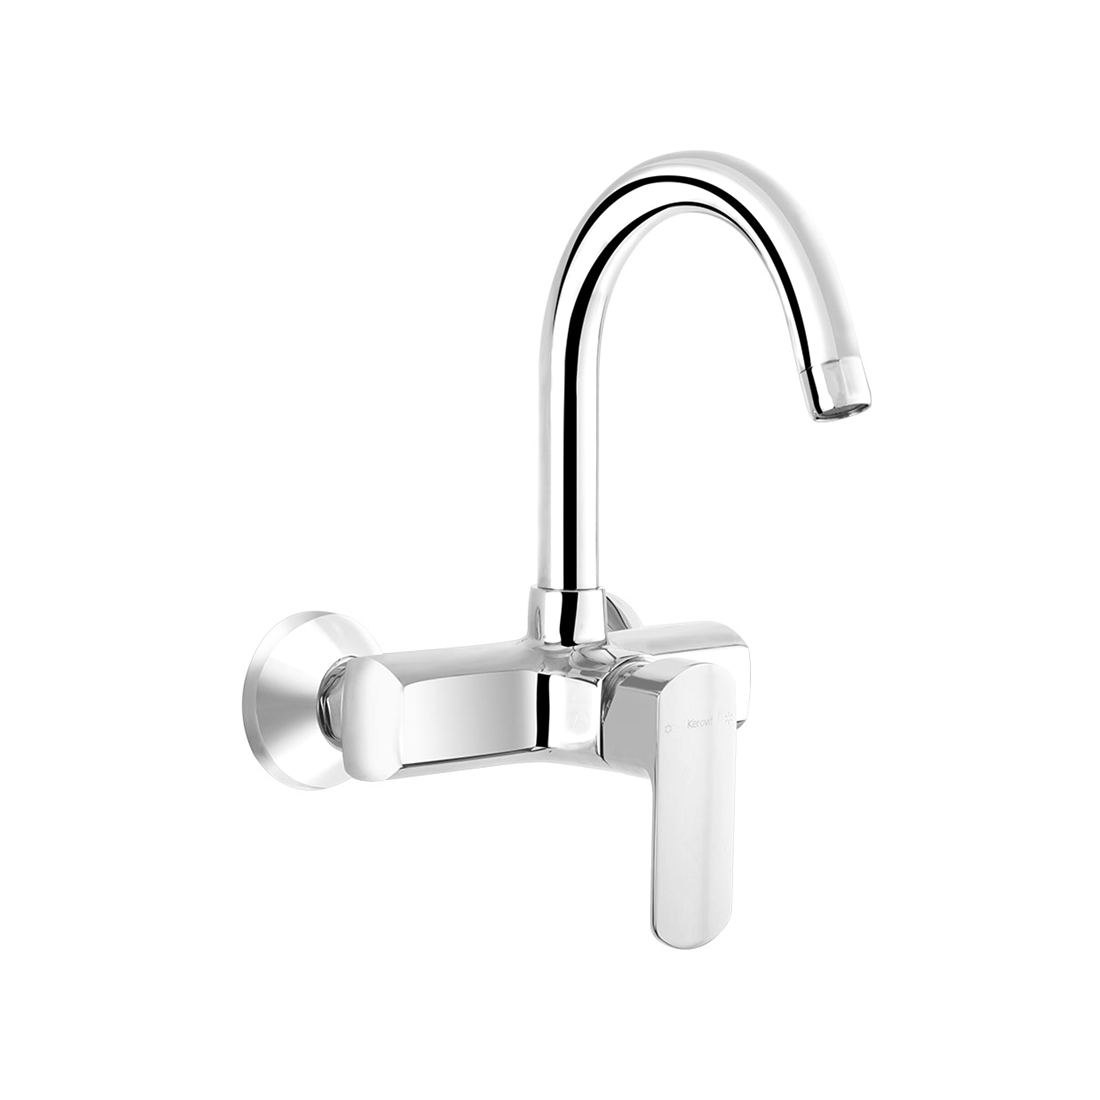 Kerovit Orion KB611038 Single Lever Sink Mixer With Swivel Spout and Flange